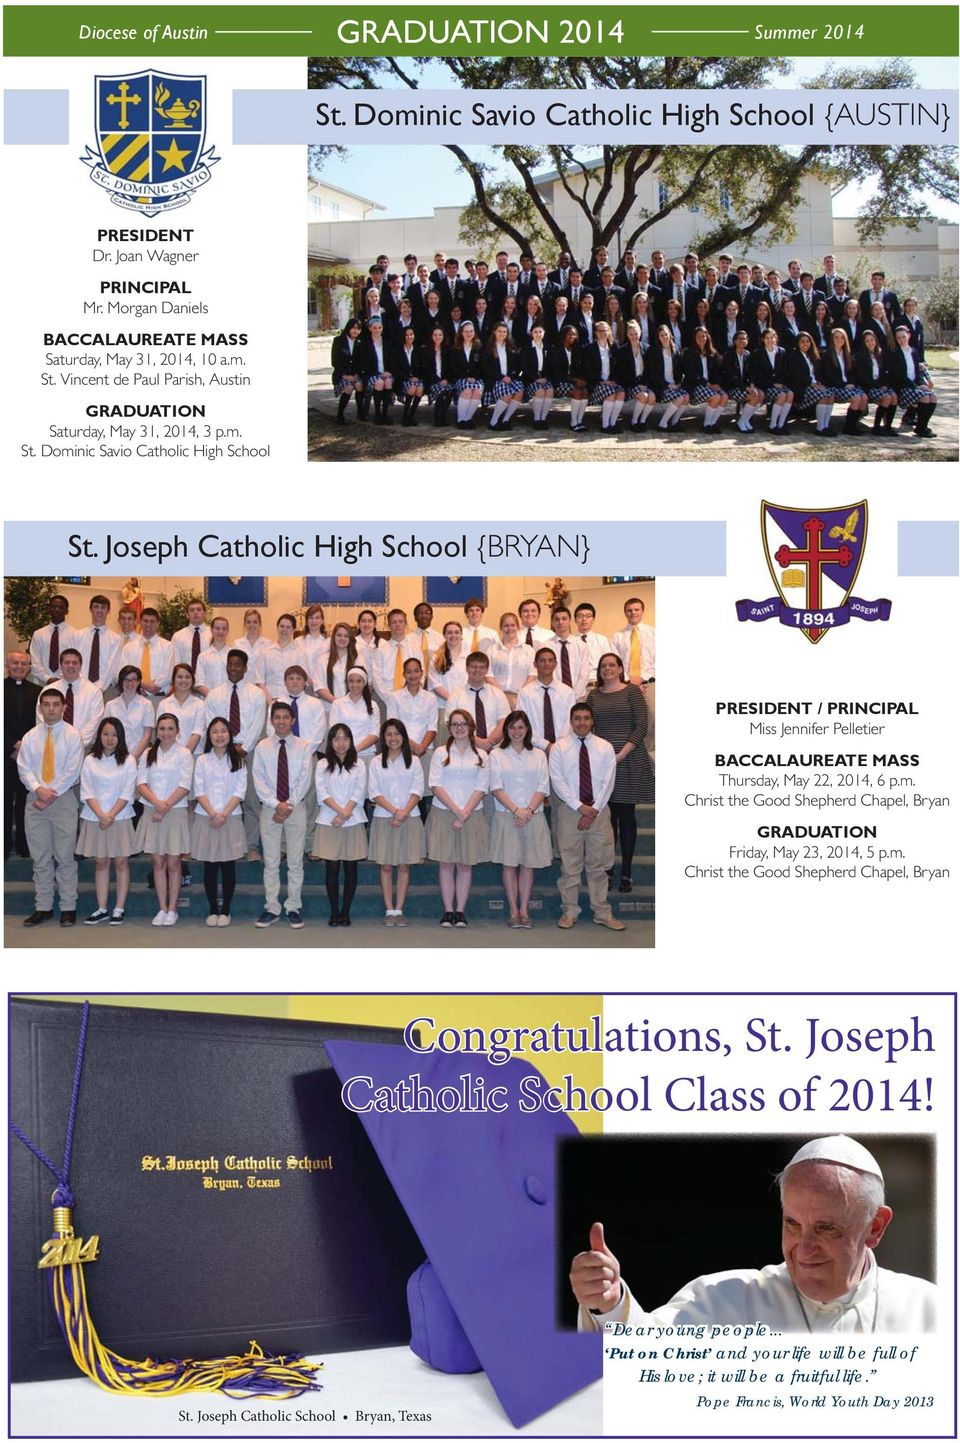 Joseph Catholic High School {BRYAN} PRESIDENT / PRINCIPAL Miss Jennifer Pelletier BACCALAUREATE MASS Thursday, May 22, 2014, 6 p.m.